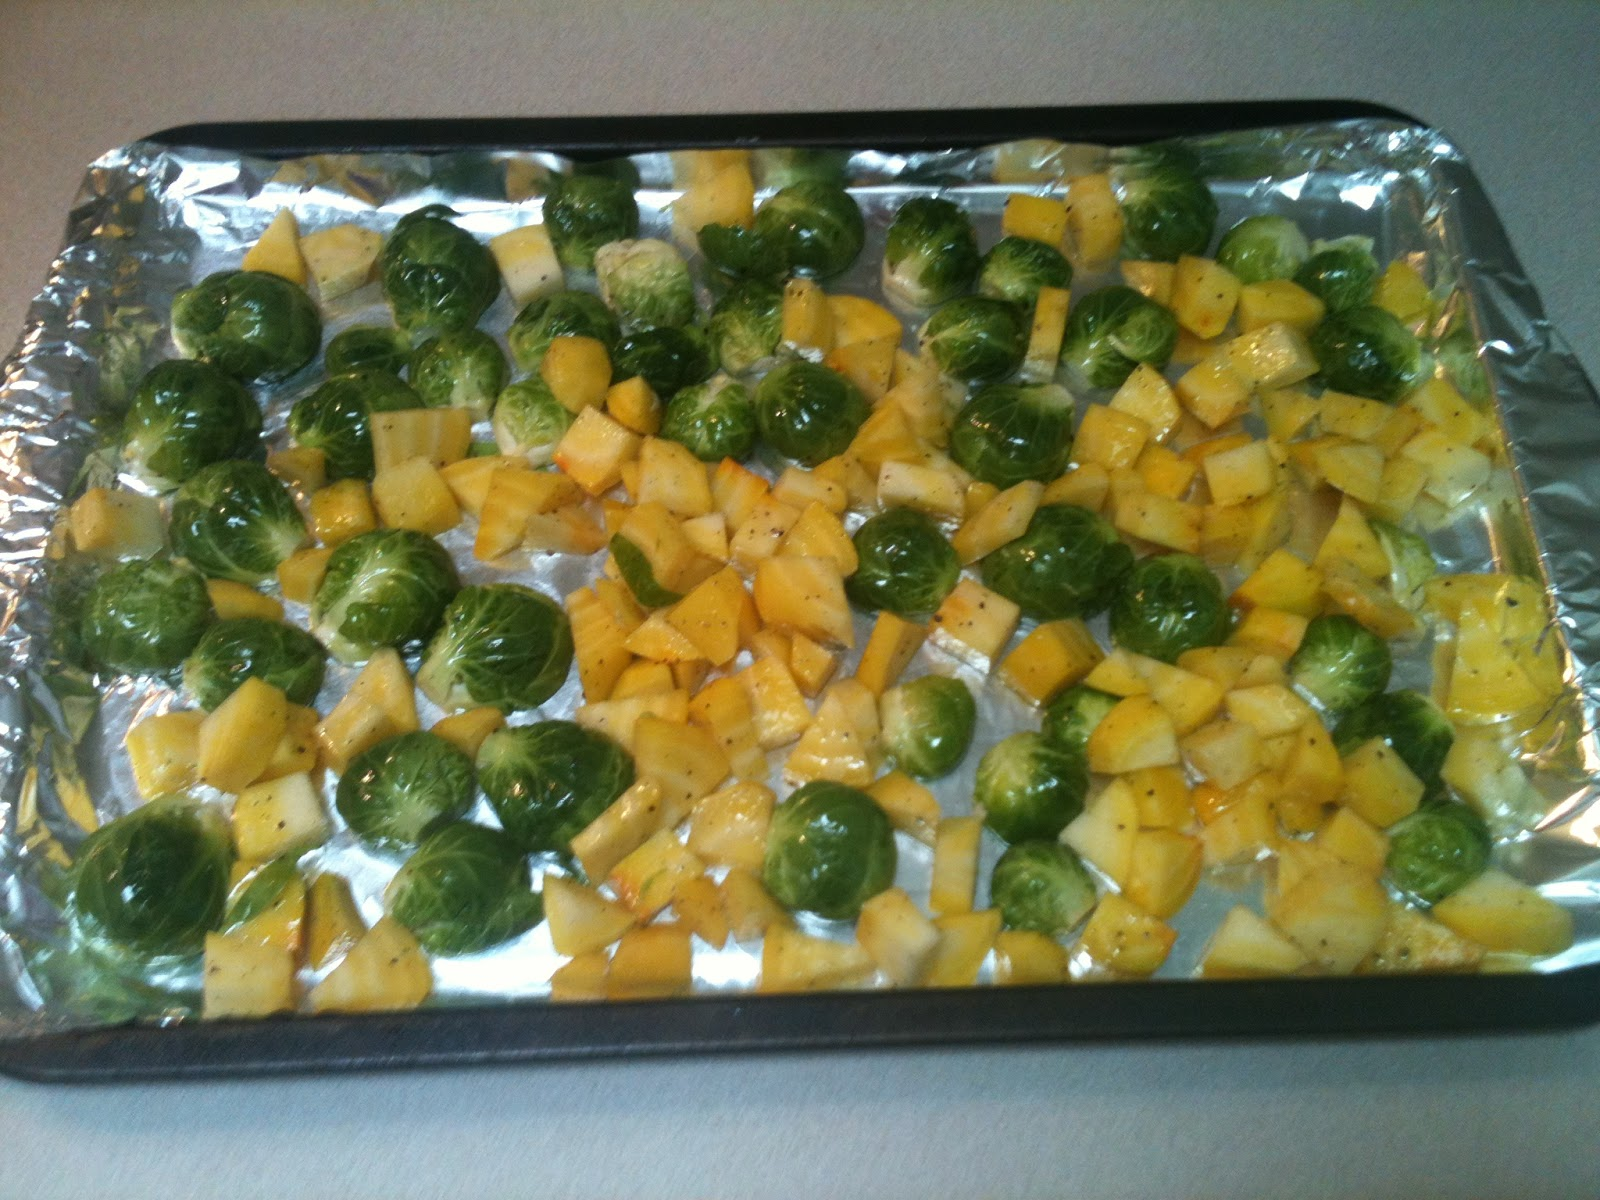 Roasted Brussels Sprouts and Beets